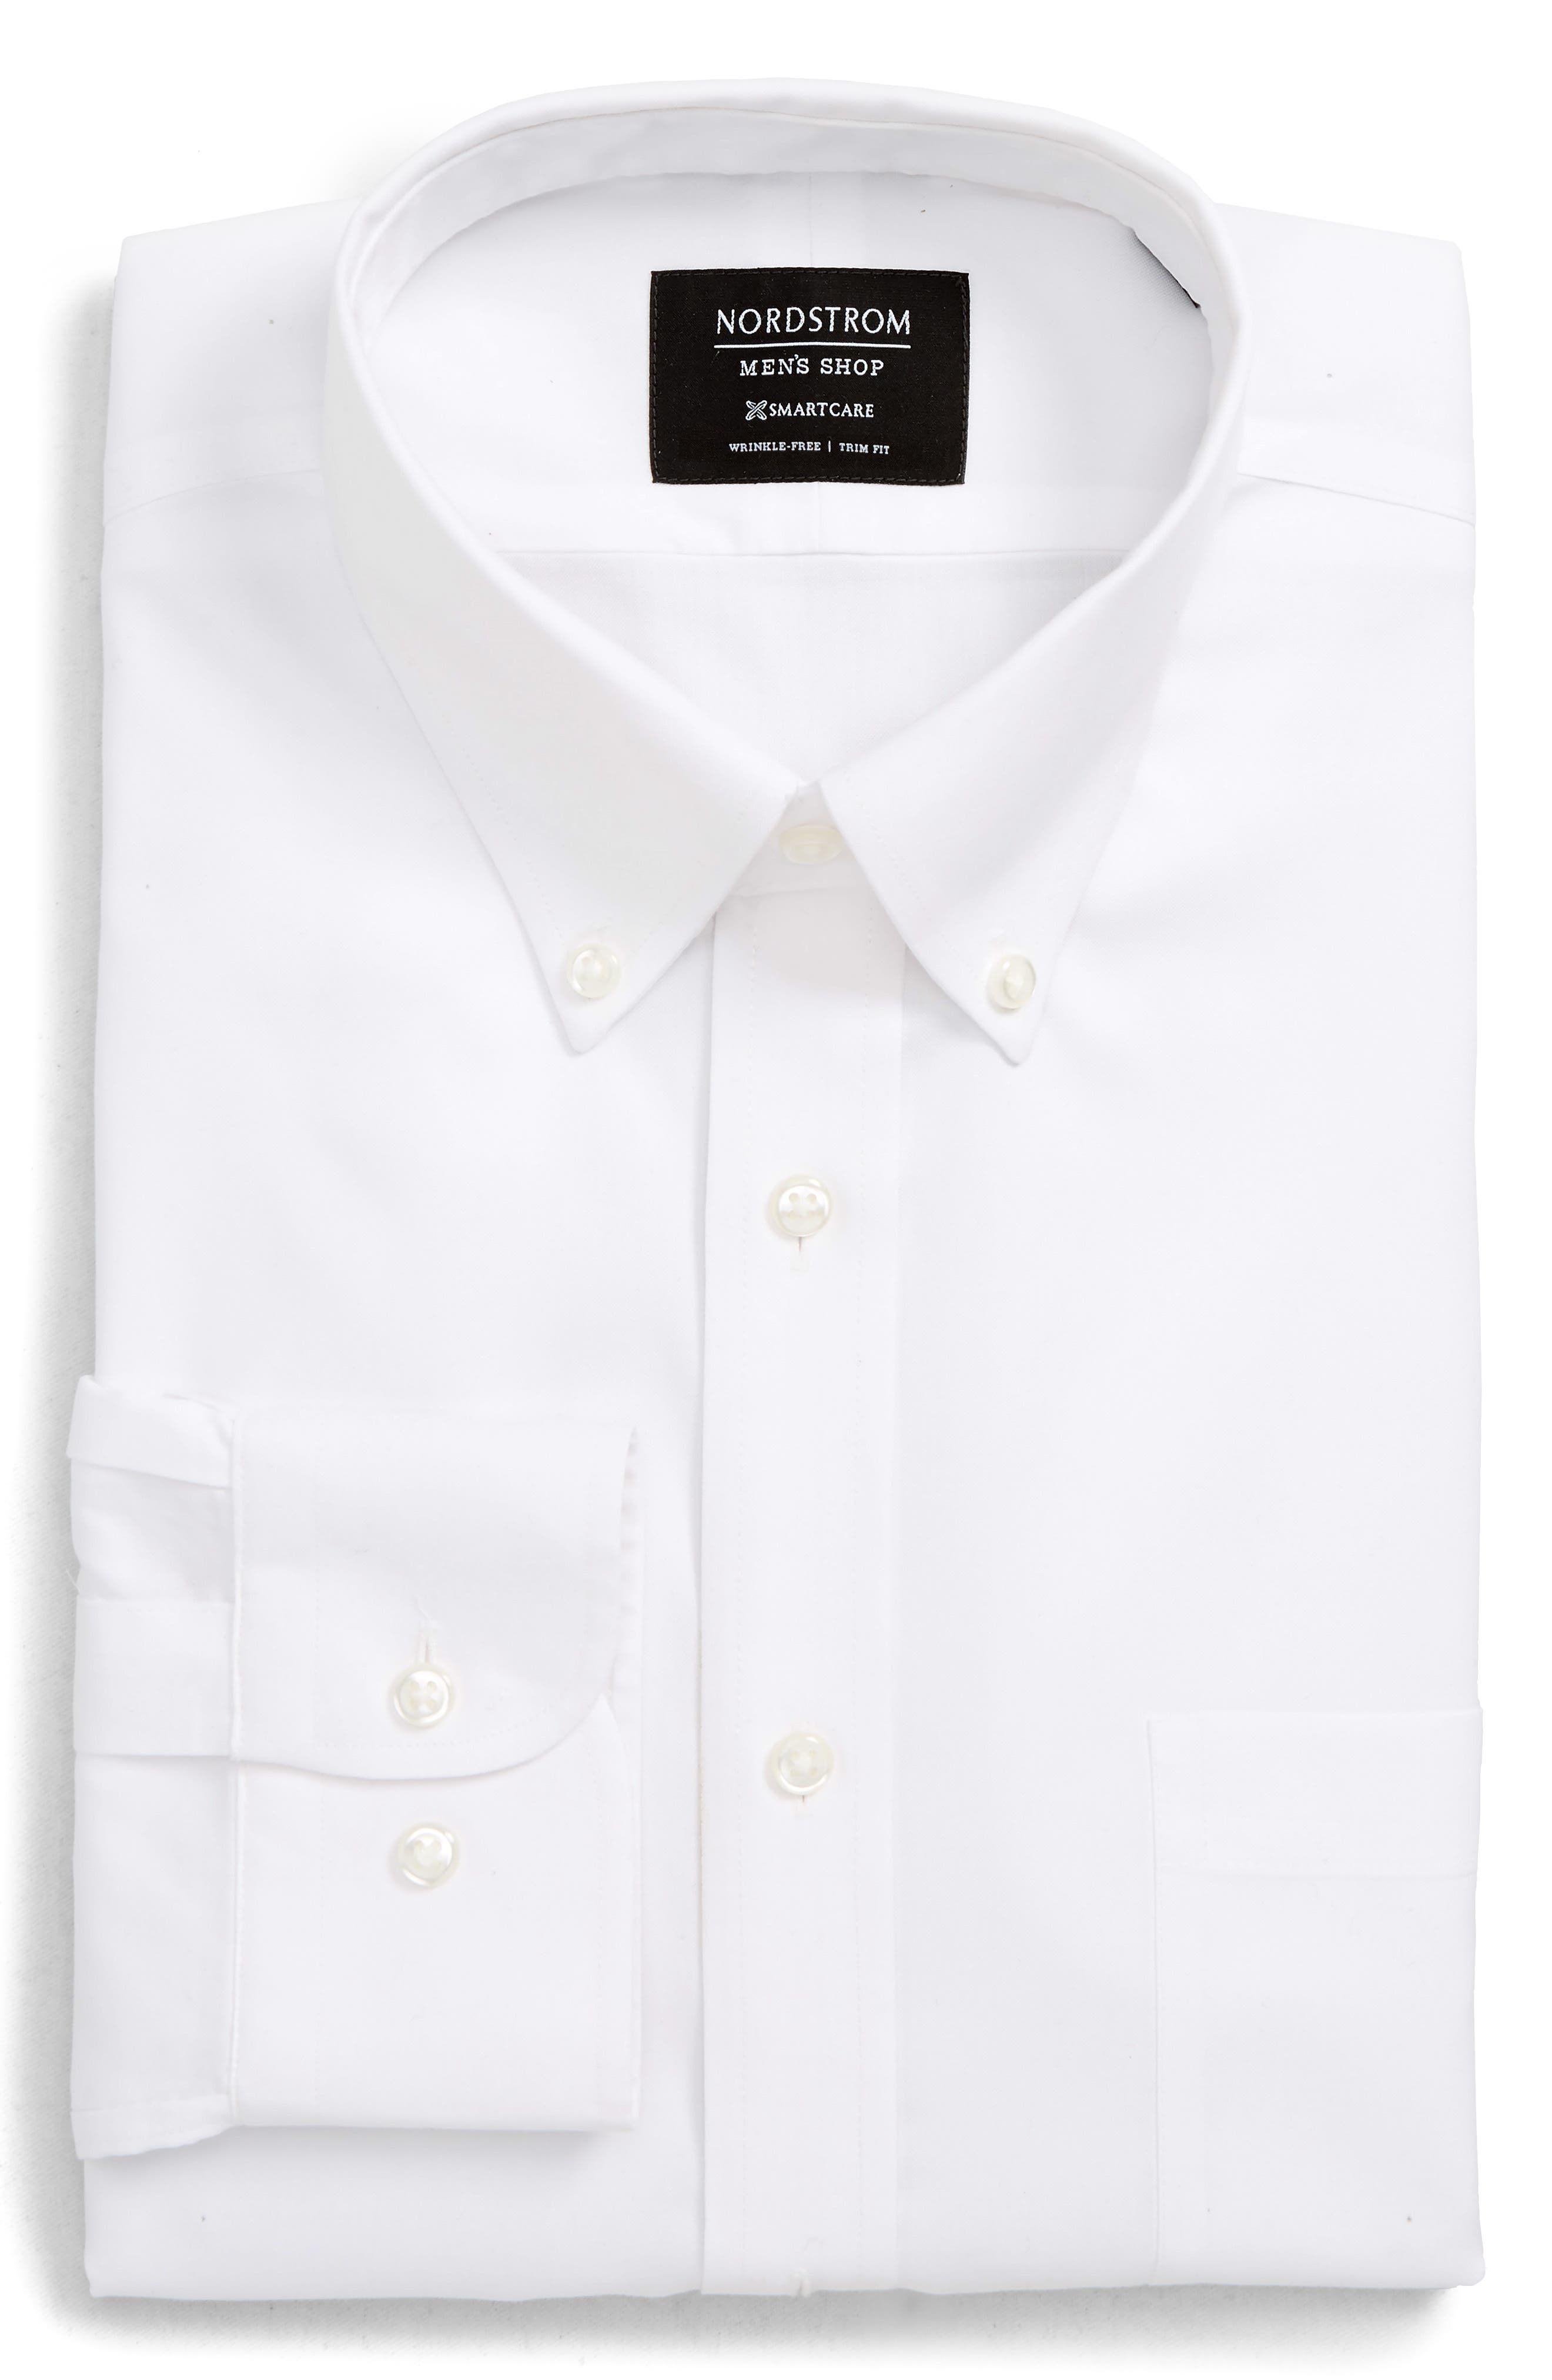 NORDSTROM MEN'S SHOP, Smartcare<sup>™</sup> Trim Fit Dress Shirt, Main thumbnail 1, color, WHITE BRILLIANT